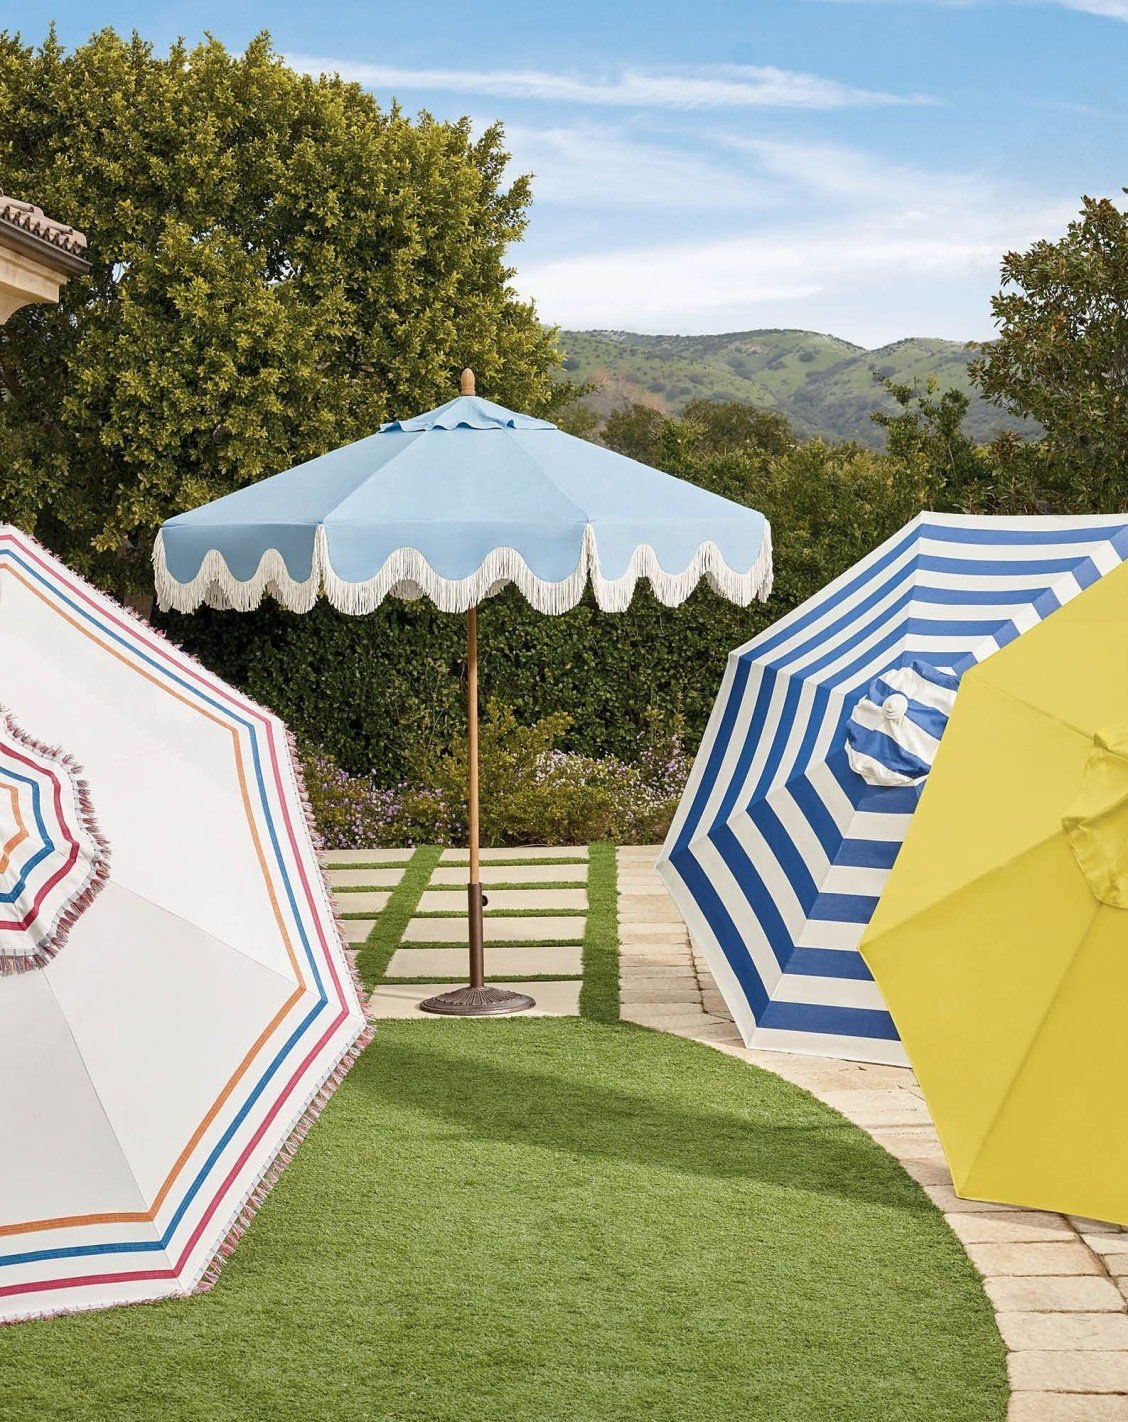 Recent Wiechmann Market Sunbrella Umbrellas With Stripes, Tassels And Patterns – Oh My! How Will You Ever Choose An (Gallery 8 of 20)